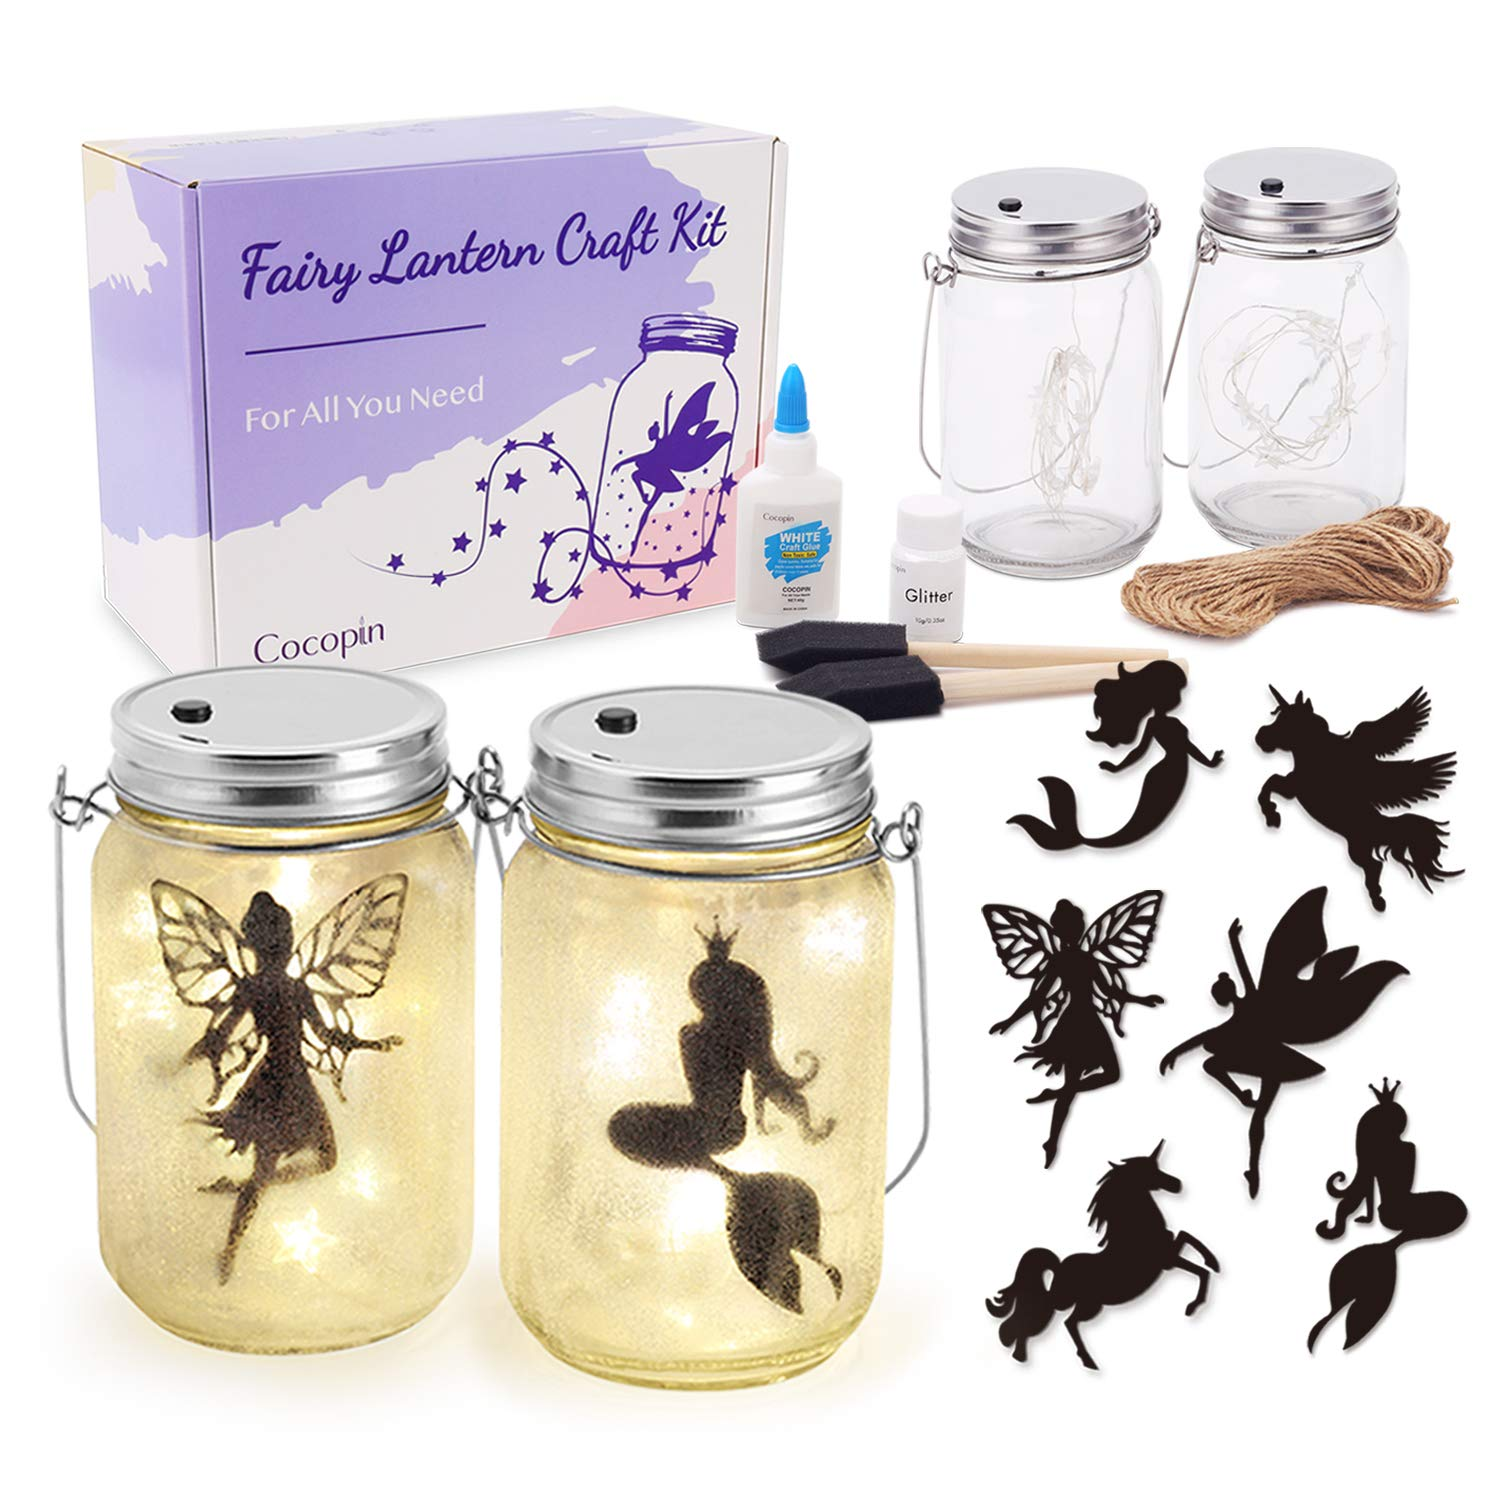 Fairy Lantern Craft Kit Decorative Hanging Mason Jar With String Lights Arts And Crafts Ideas For Girls Best Creative Activities For Birthday Party And School Amazon Com Au Kitchen